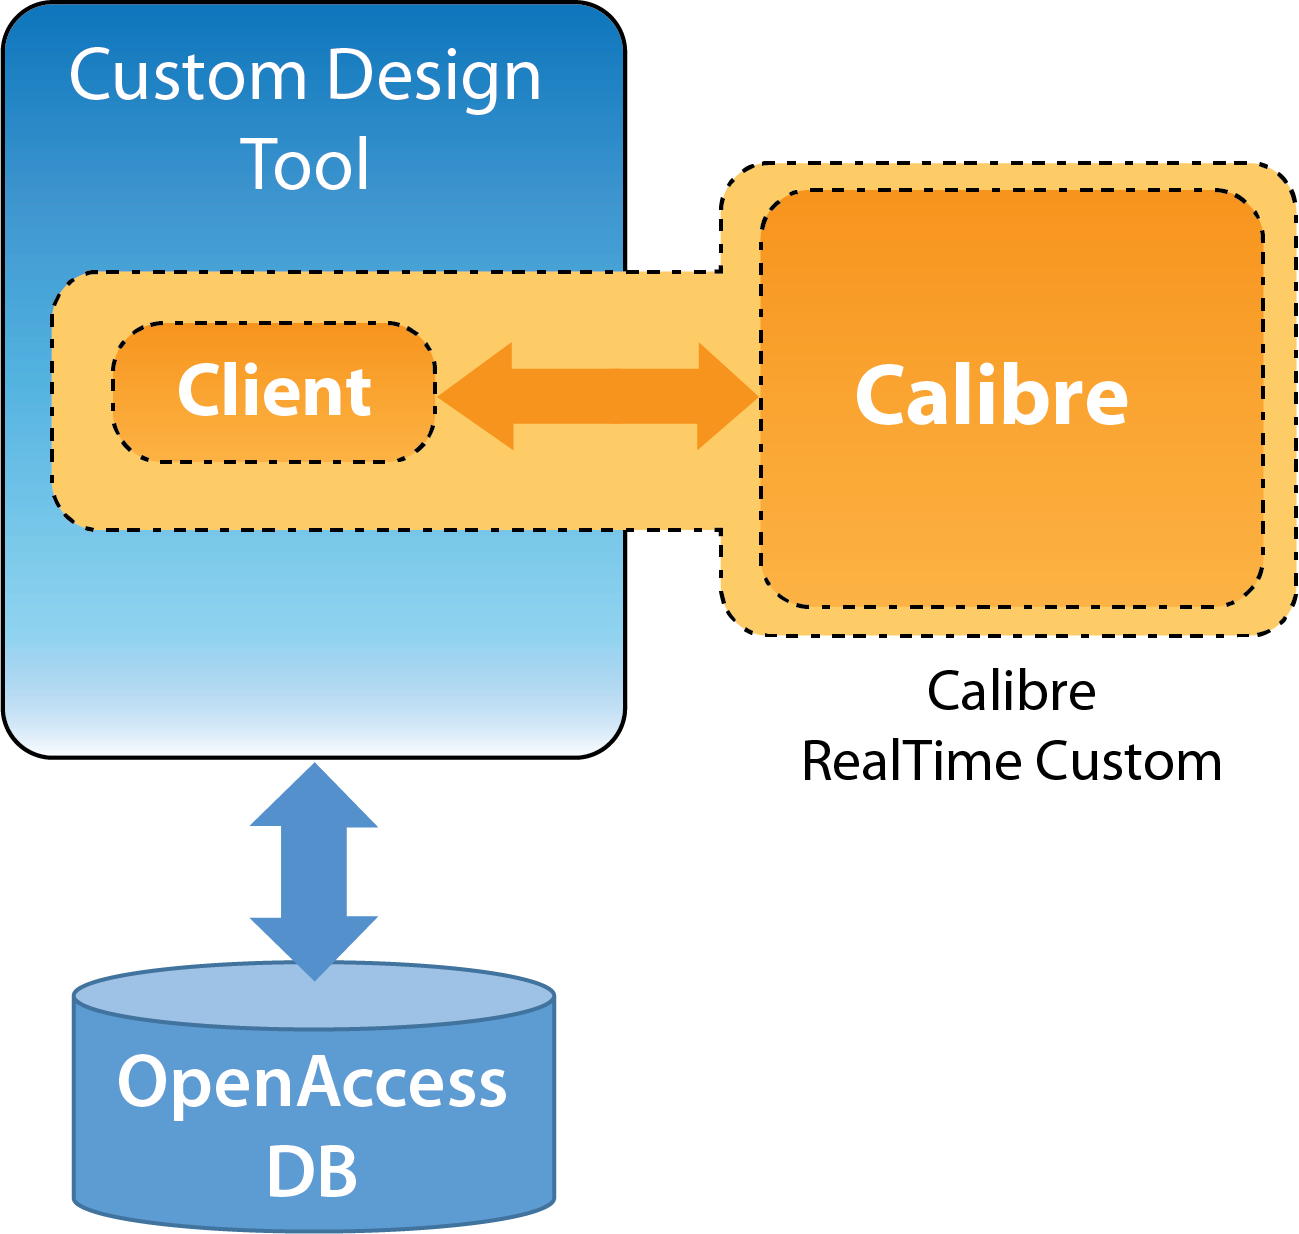 3d Design Using Home Designer Chief Architect Multi Level: Why You Should Use The Calibre RealTime Custom Interface